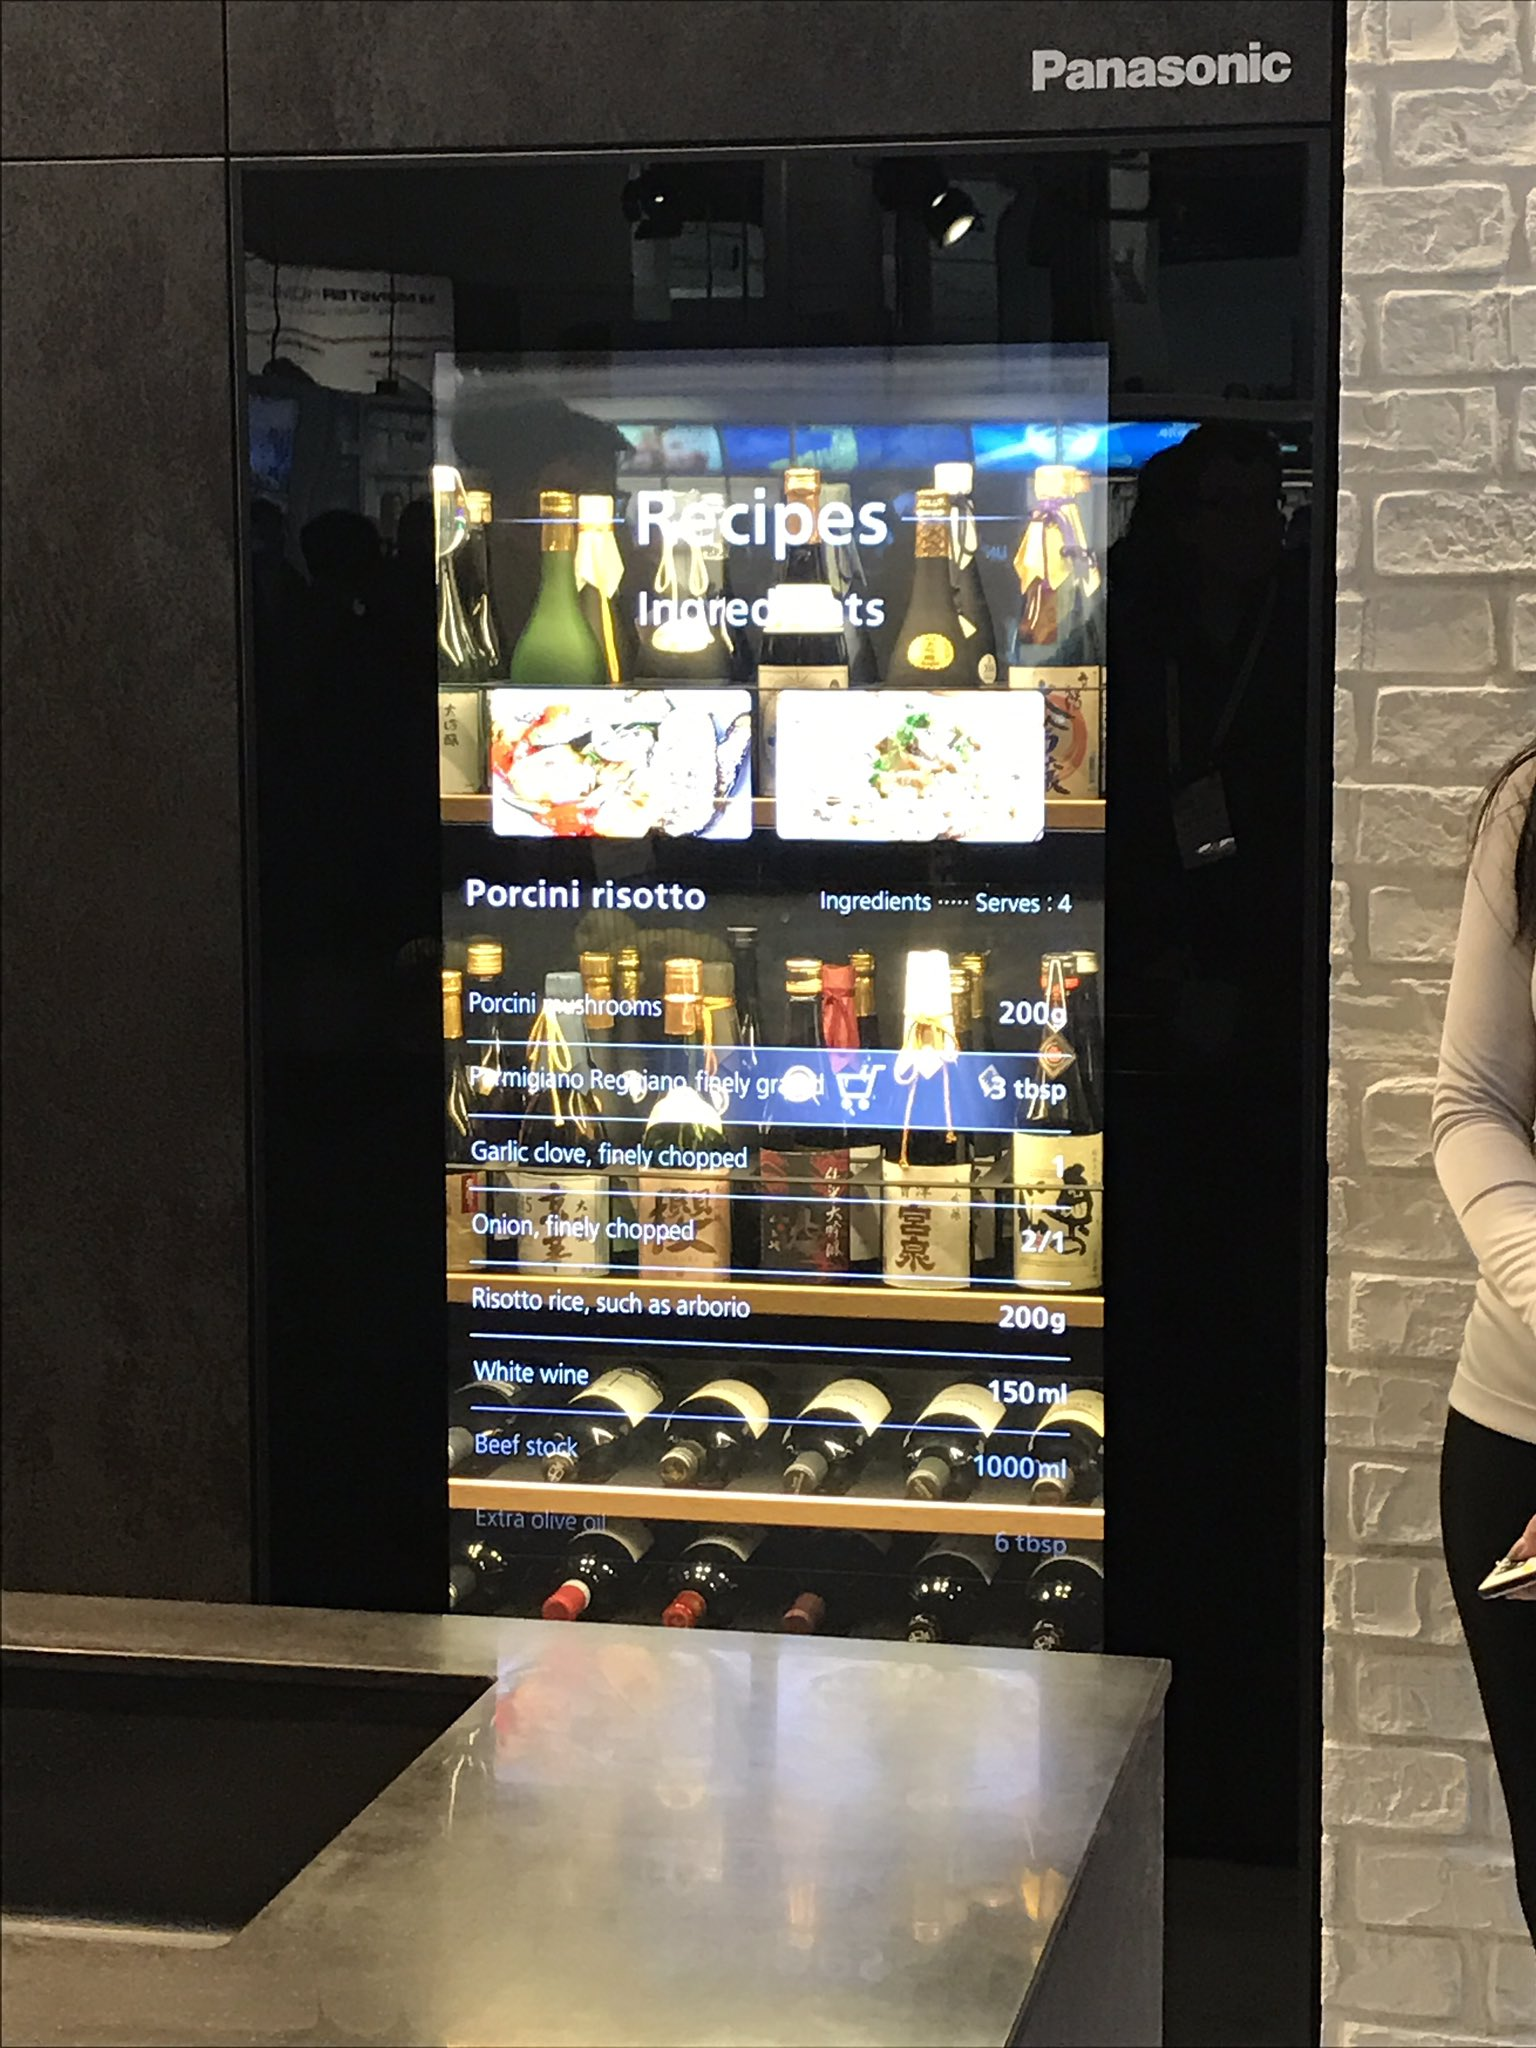 The kitchens are smarter at #CES2017 https://t.co/x8LM0gdtN3